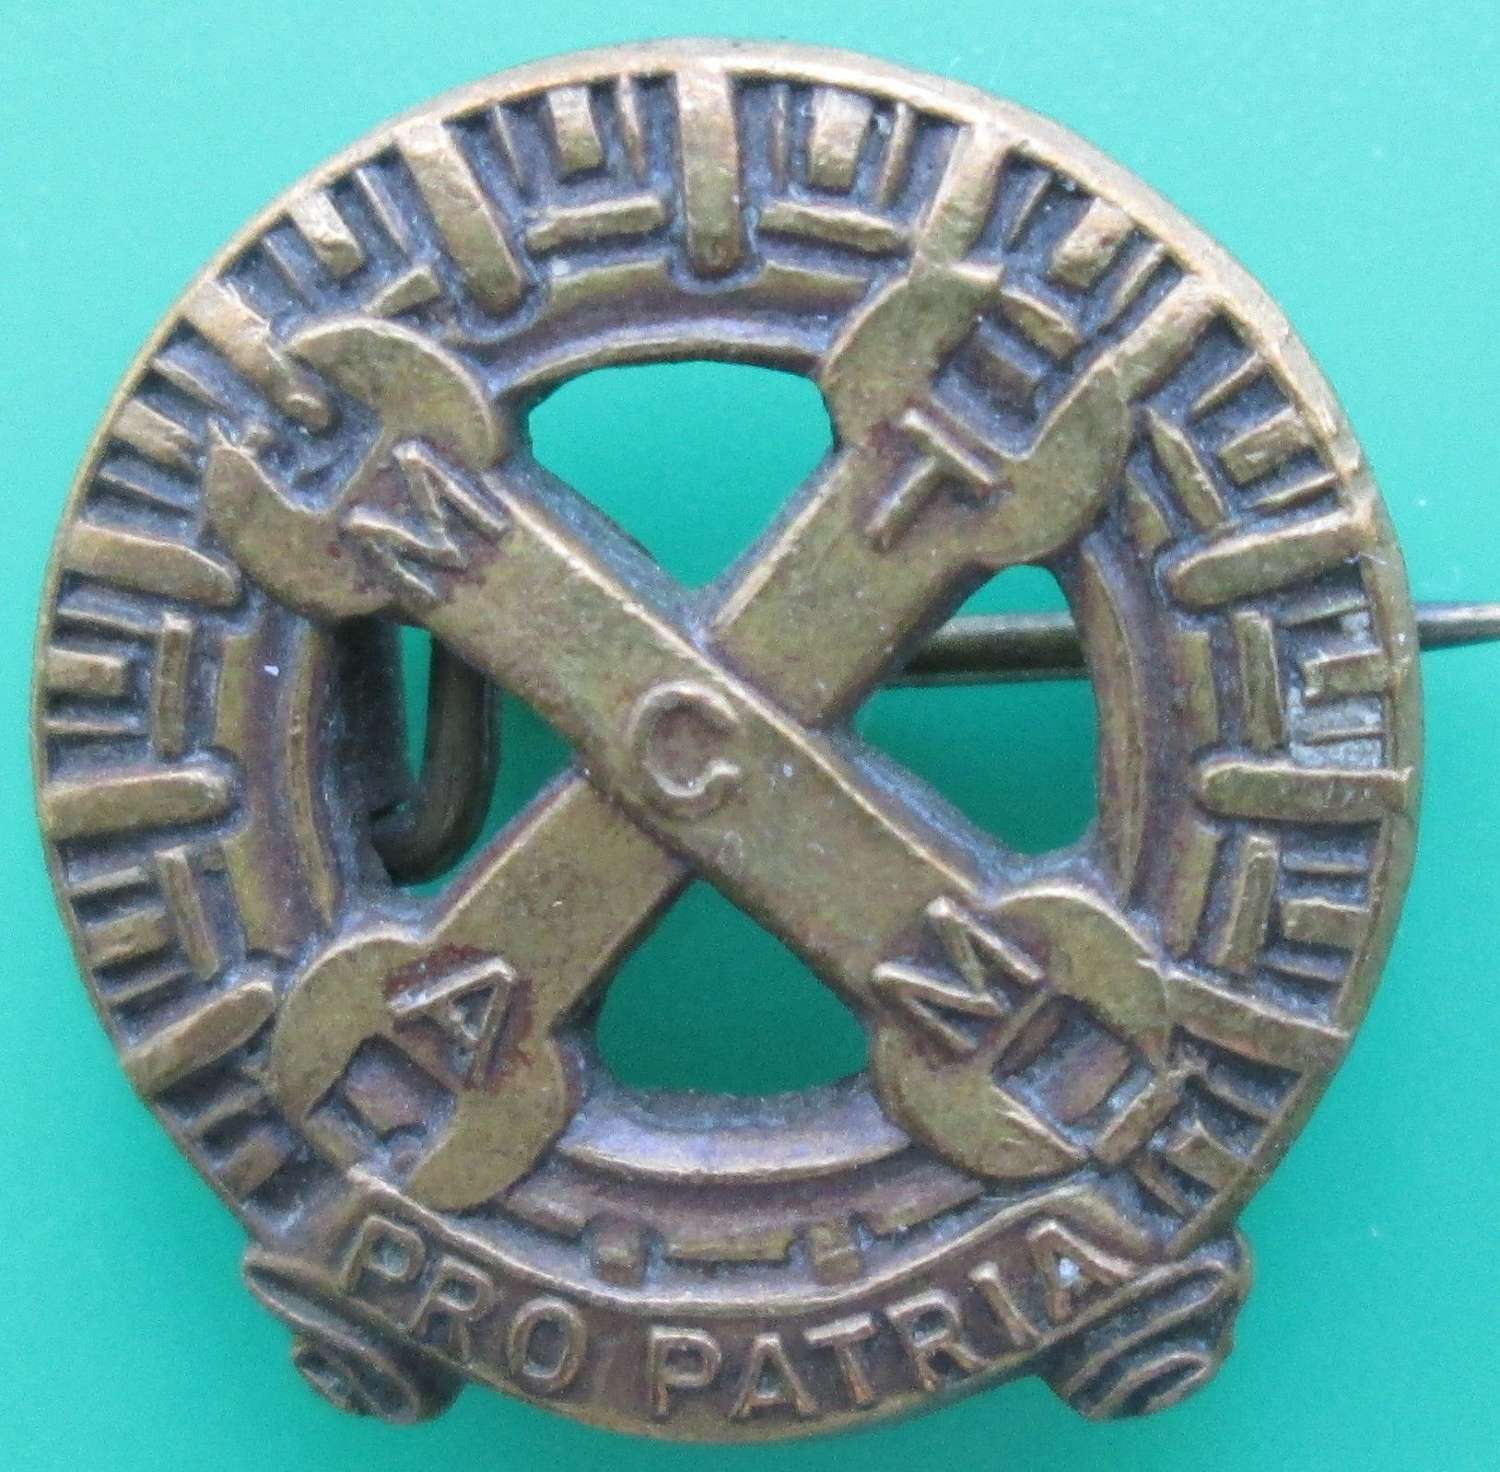 A SMALL PIN BADGE FOR THE MECHANISED TRANSPORT SERVICE